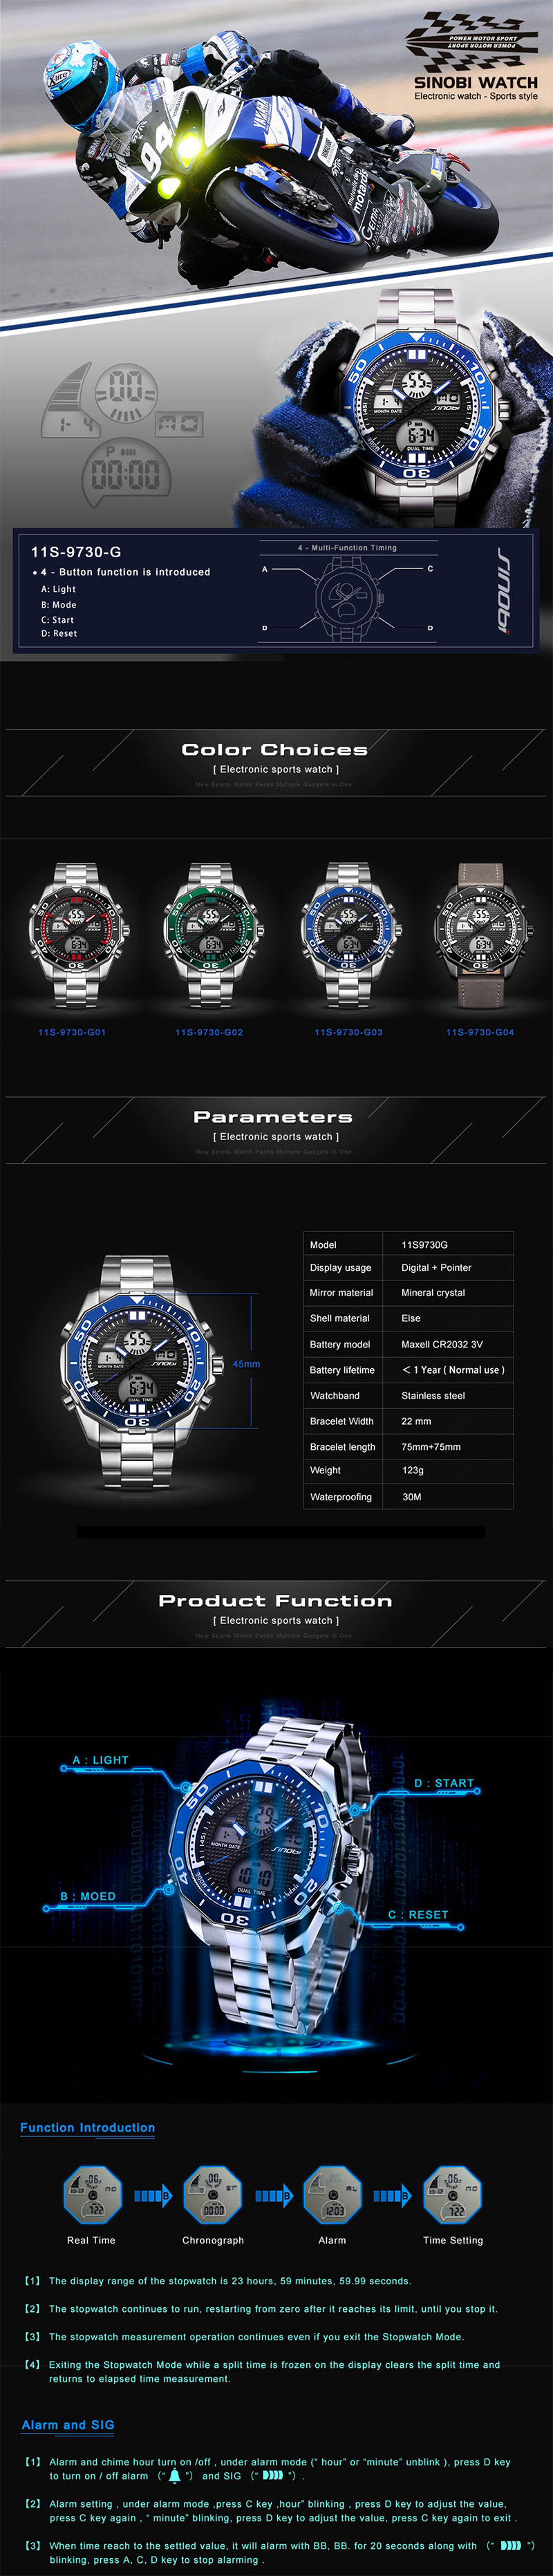 SINOBI 9730 Men Luminous Display Dual Display Digital Watch